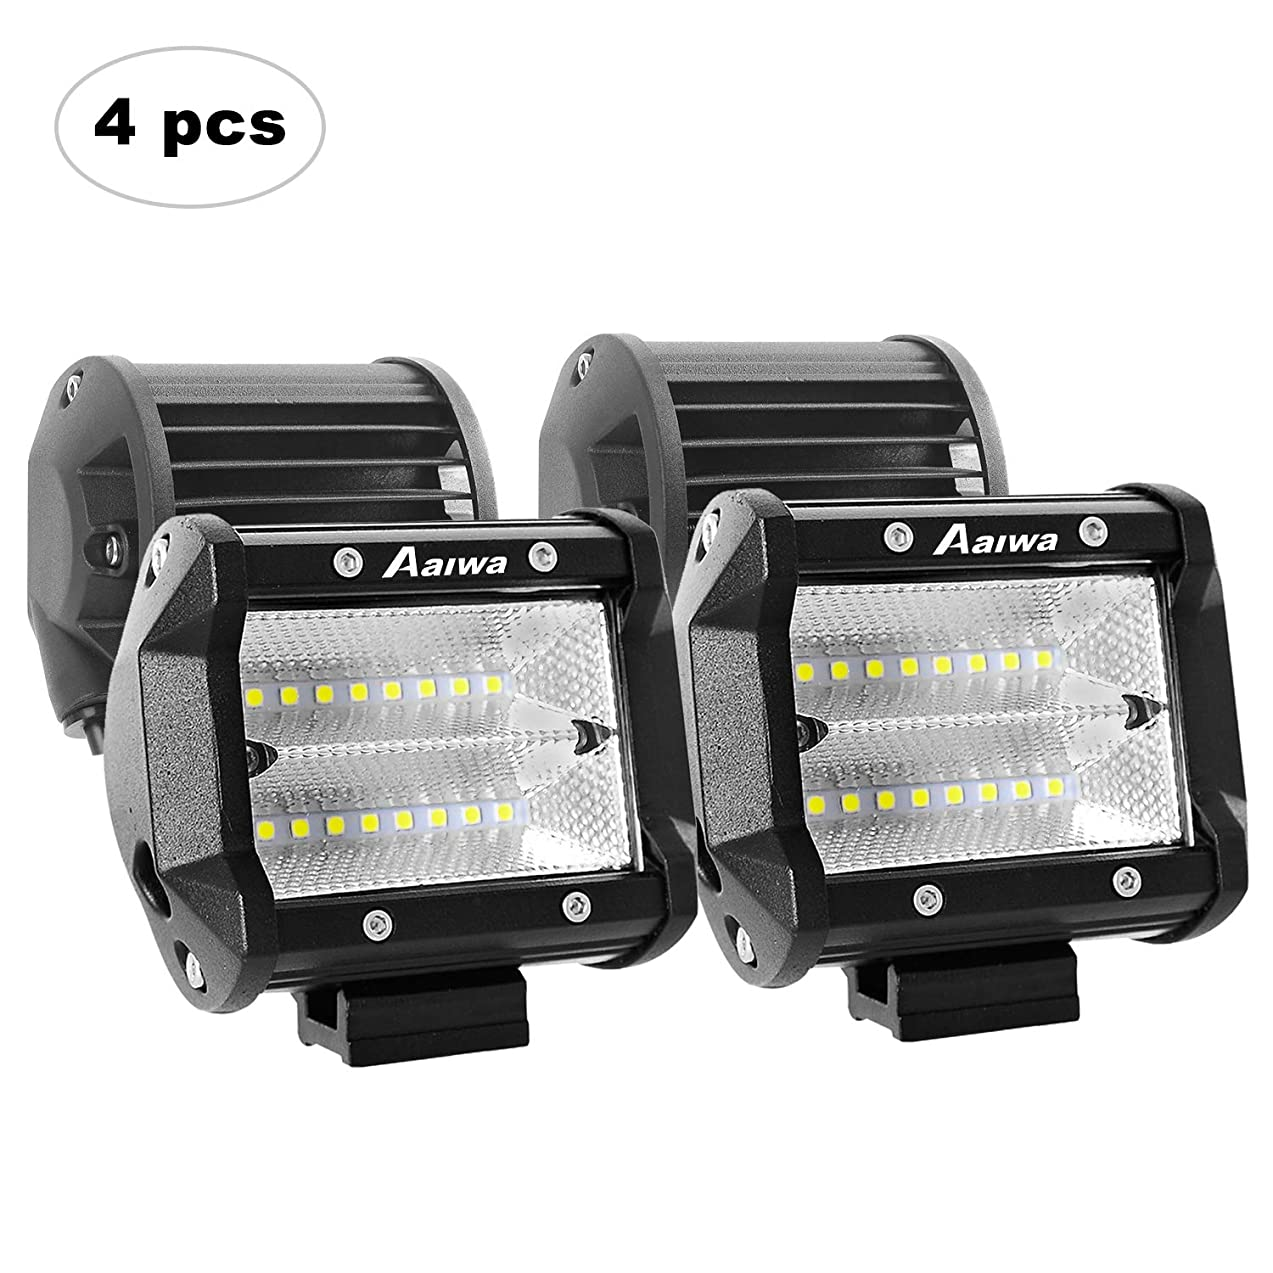 AAIWA LED Pods 4 Pack 48W LED Light Bar Off Road Driving Lights Fog Lights for Truck, Car, ATV, SUV, Jeep, Boat, 2 Years Warranty